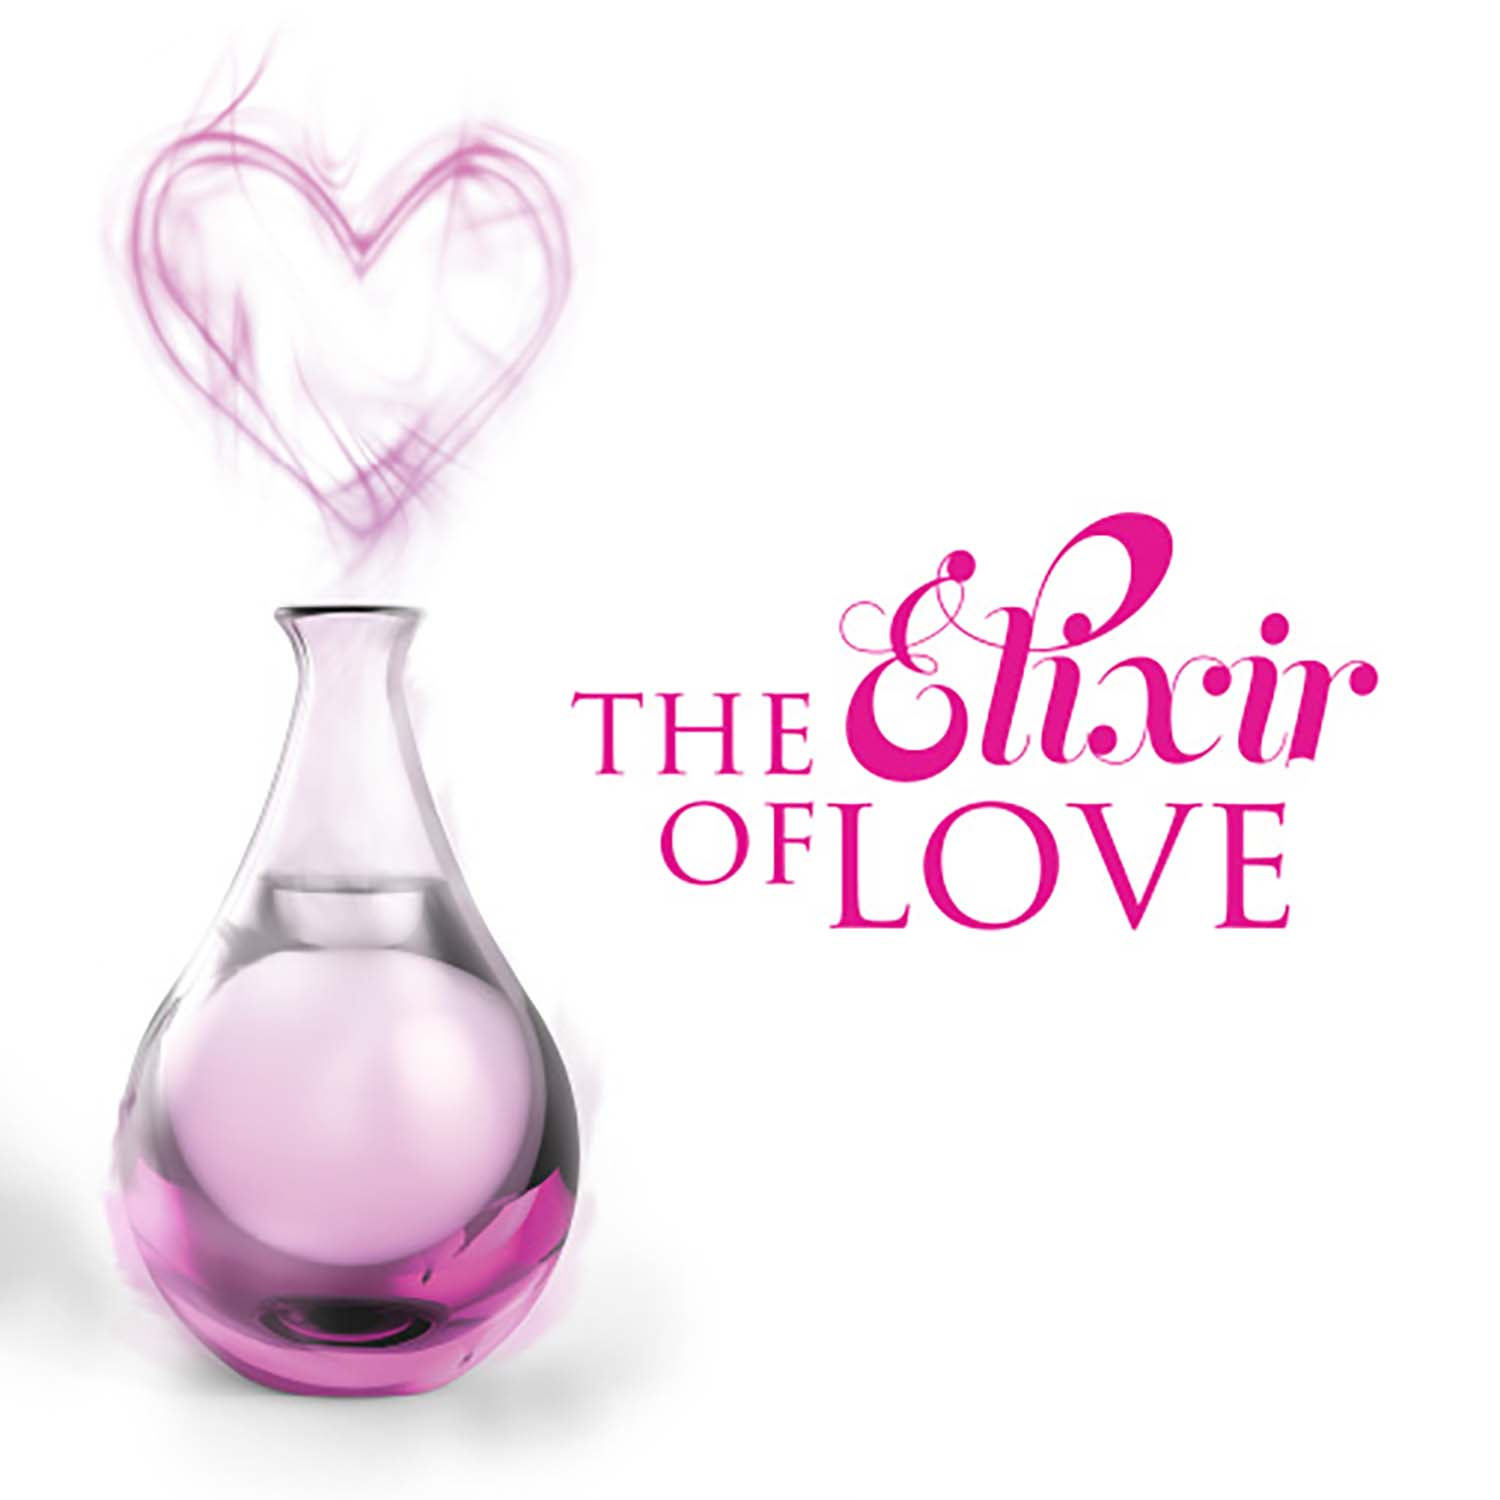 "the elixir of love The elixir of love april 22, 2018 ~ george b parous pittsburgh opera gave the first of four performances of donizetti's the elixir of love last night, and a large audience seemed to be so taken with the ""potion"" offered that the applause was loud and lingering, and everyone seemed reluctant to go home."